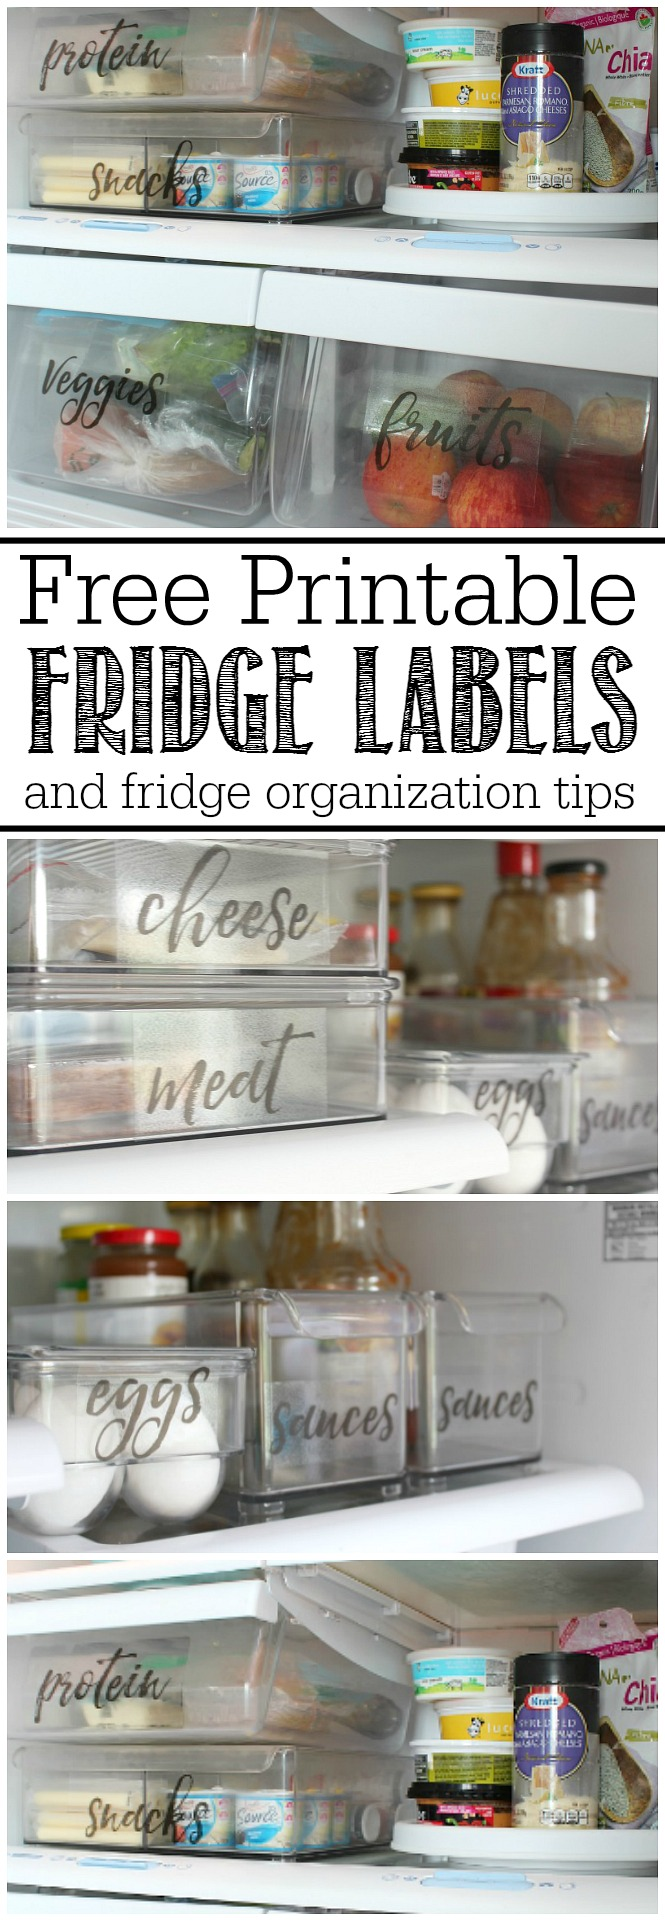 photograph relating to Printable Freezer Labels titled No cost Printable Refrigerator Labels - Contemporary and Scentsible